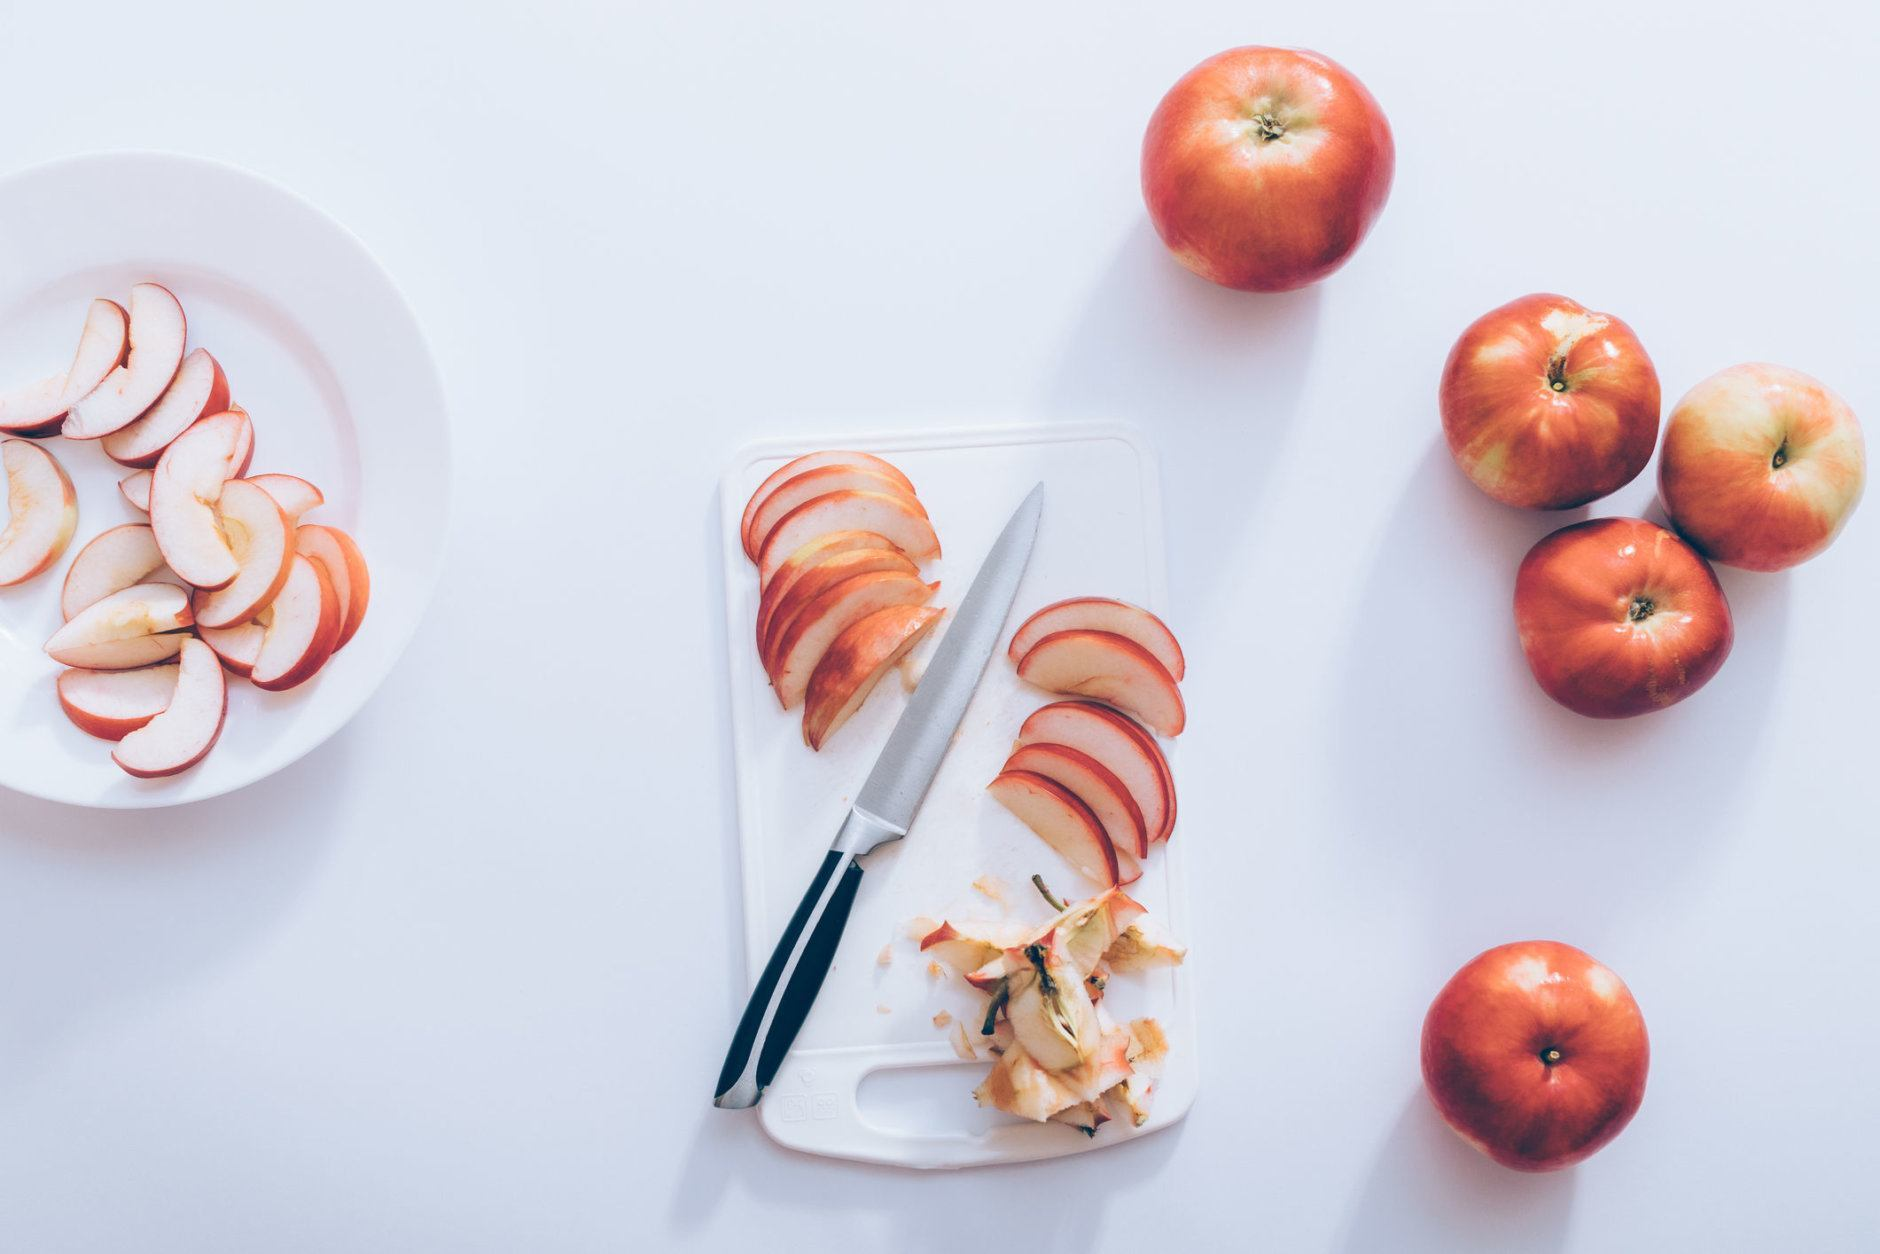 <p>(1) Cut apples into matchstick-size strips and add them to your favorite kale salad for a tart and crunchy addition.</p>